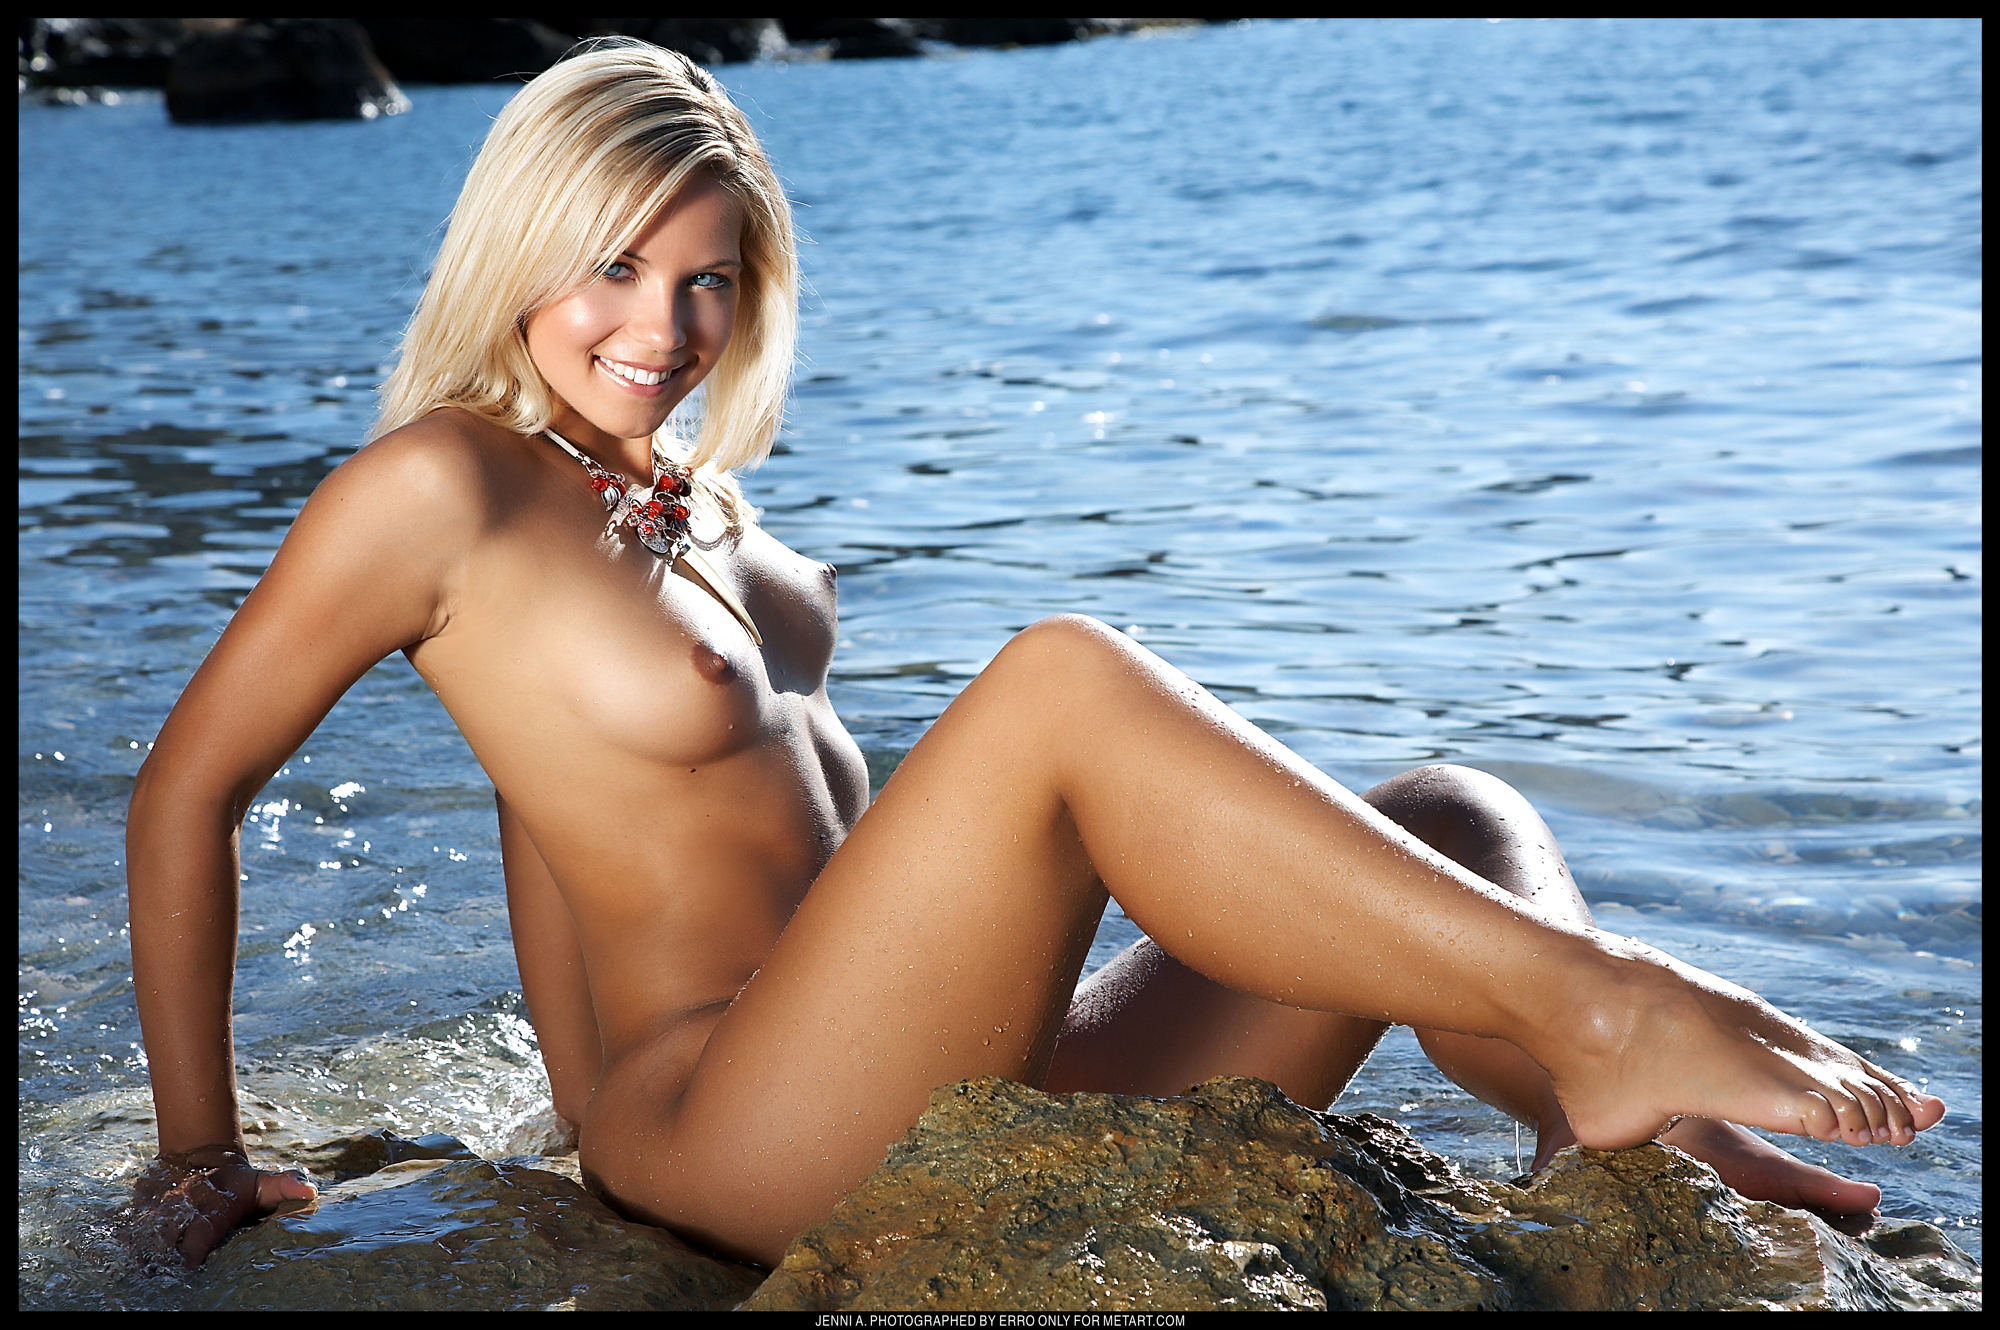 from Cyrus greek beaches sunbathing nude